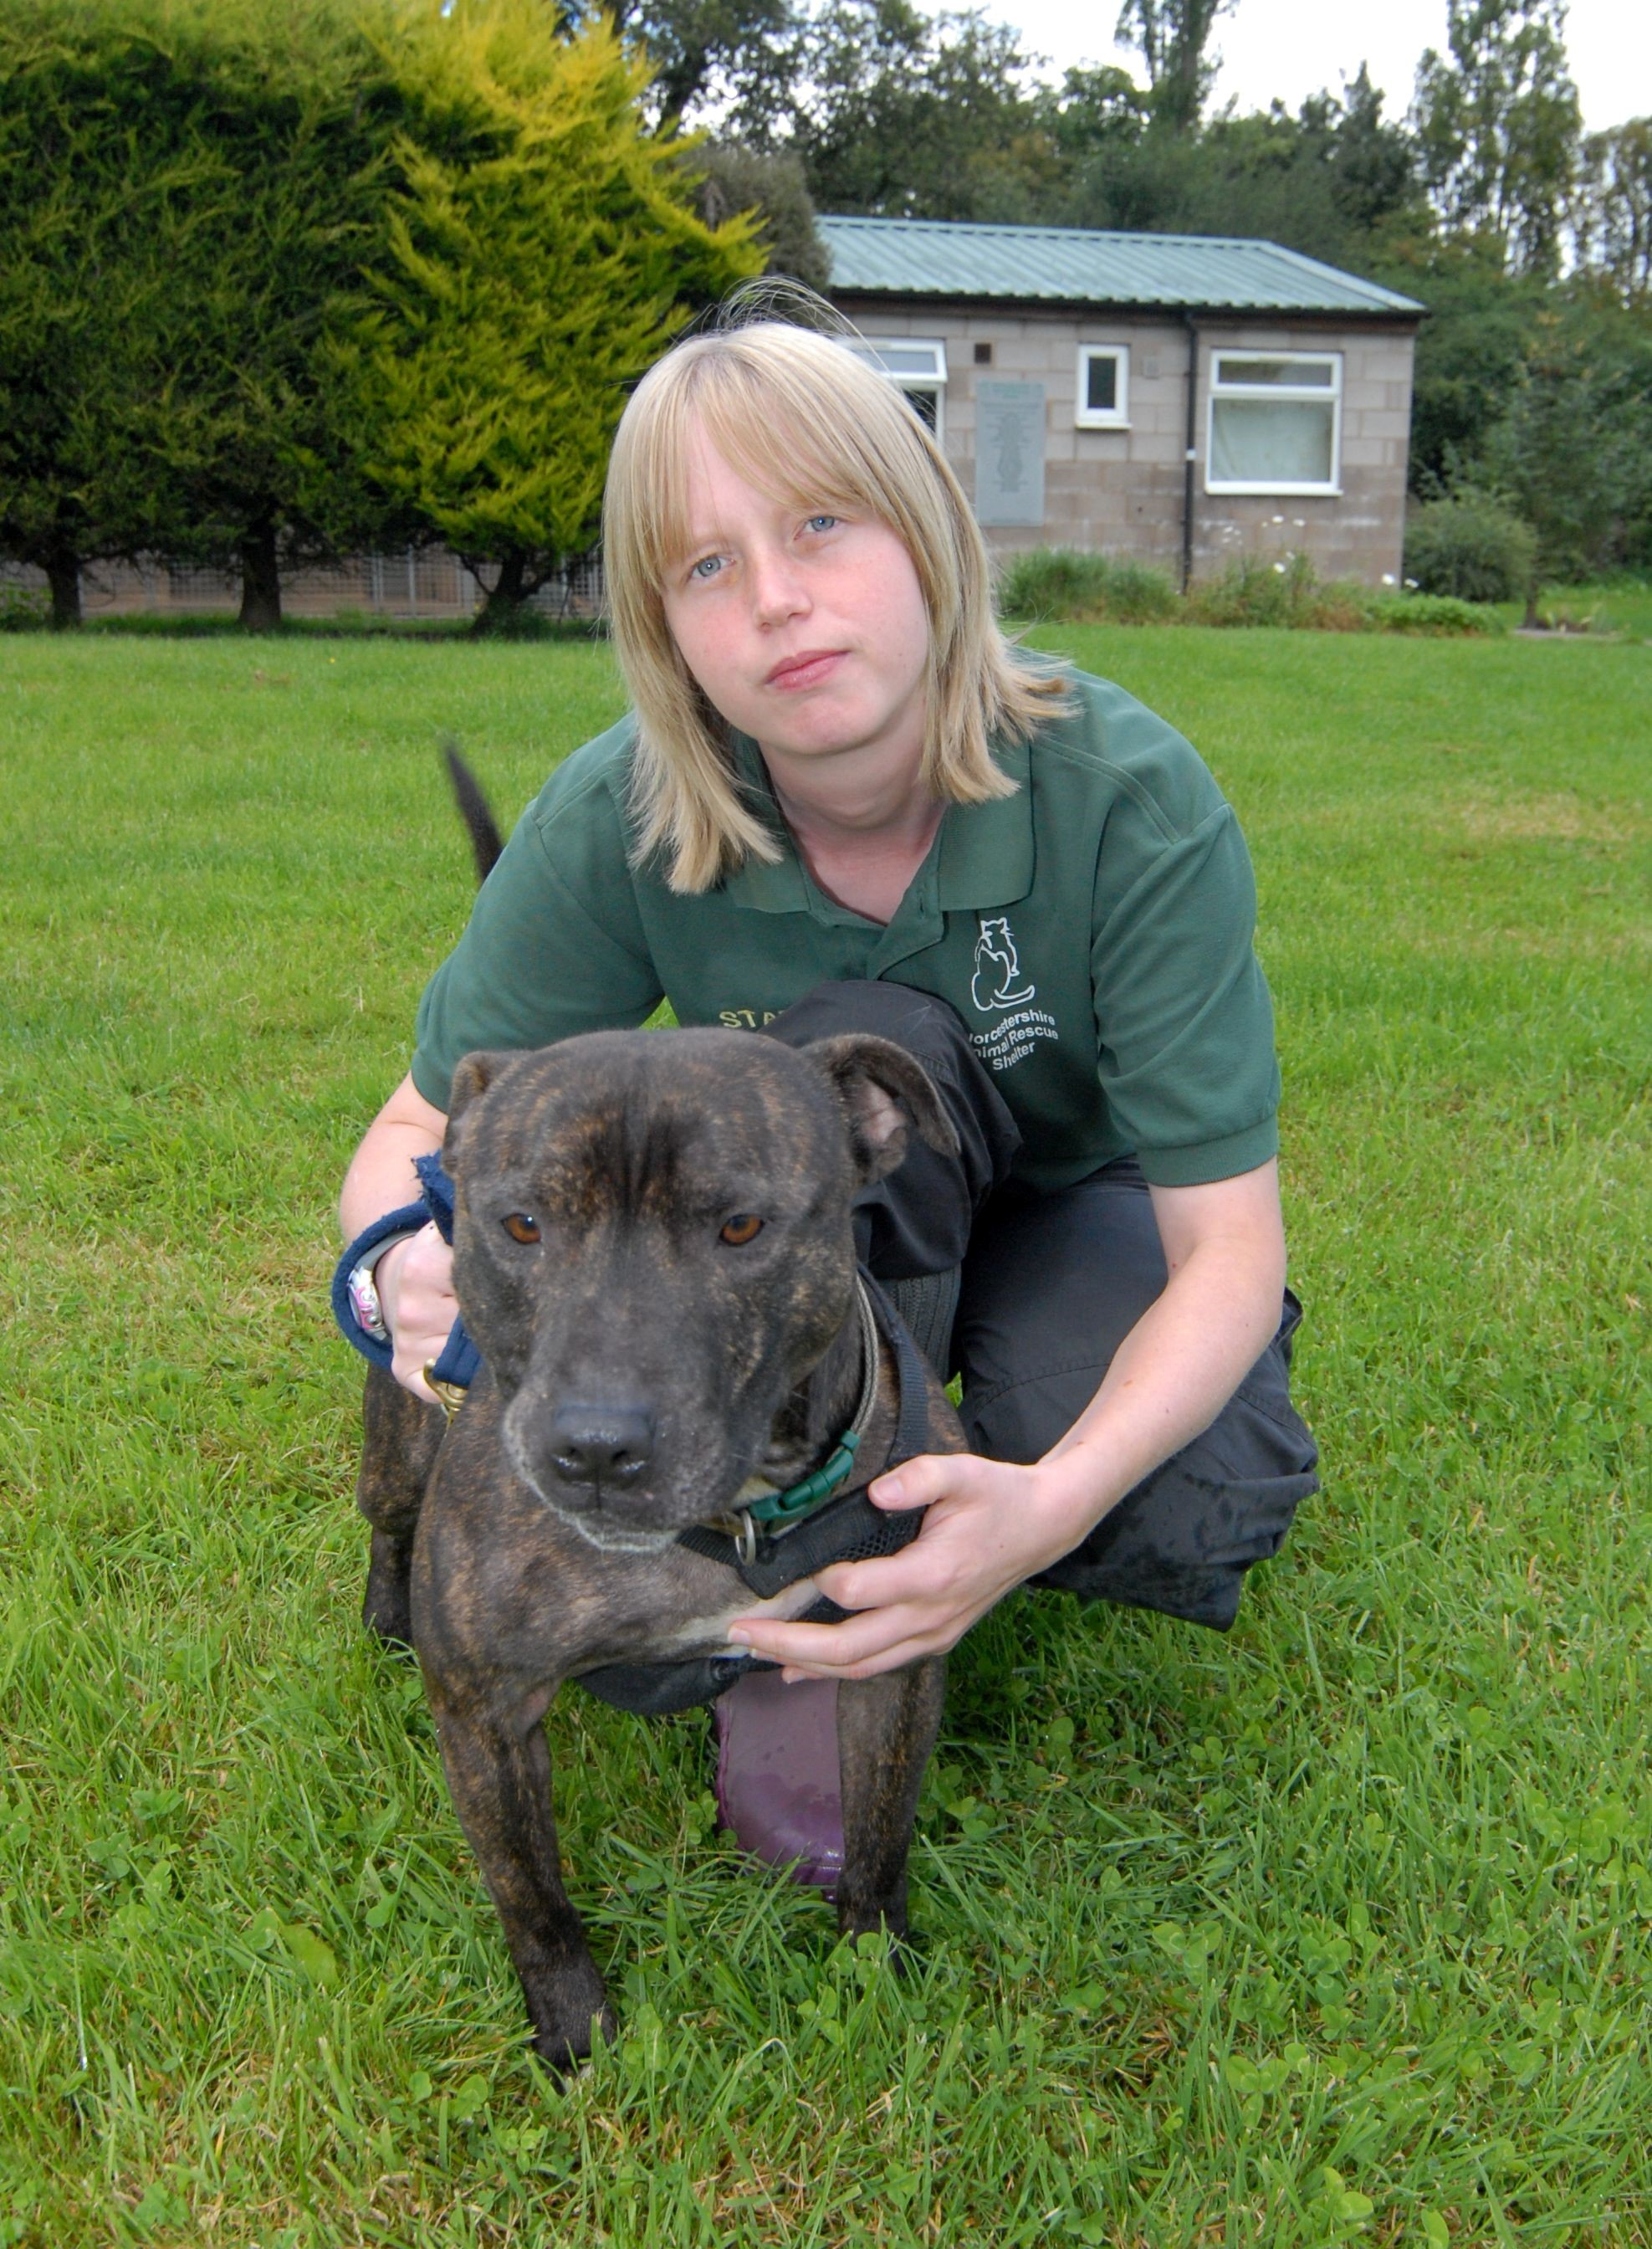 Lack of dog walkers impacts on rescue shelter